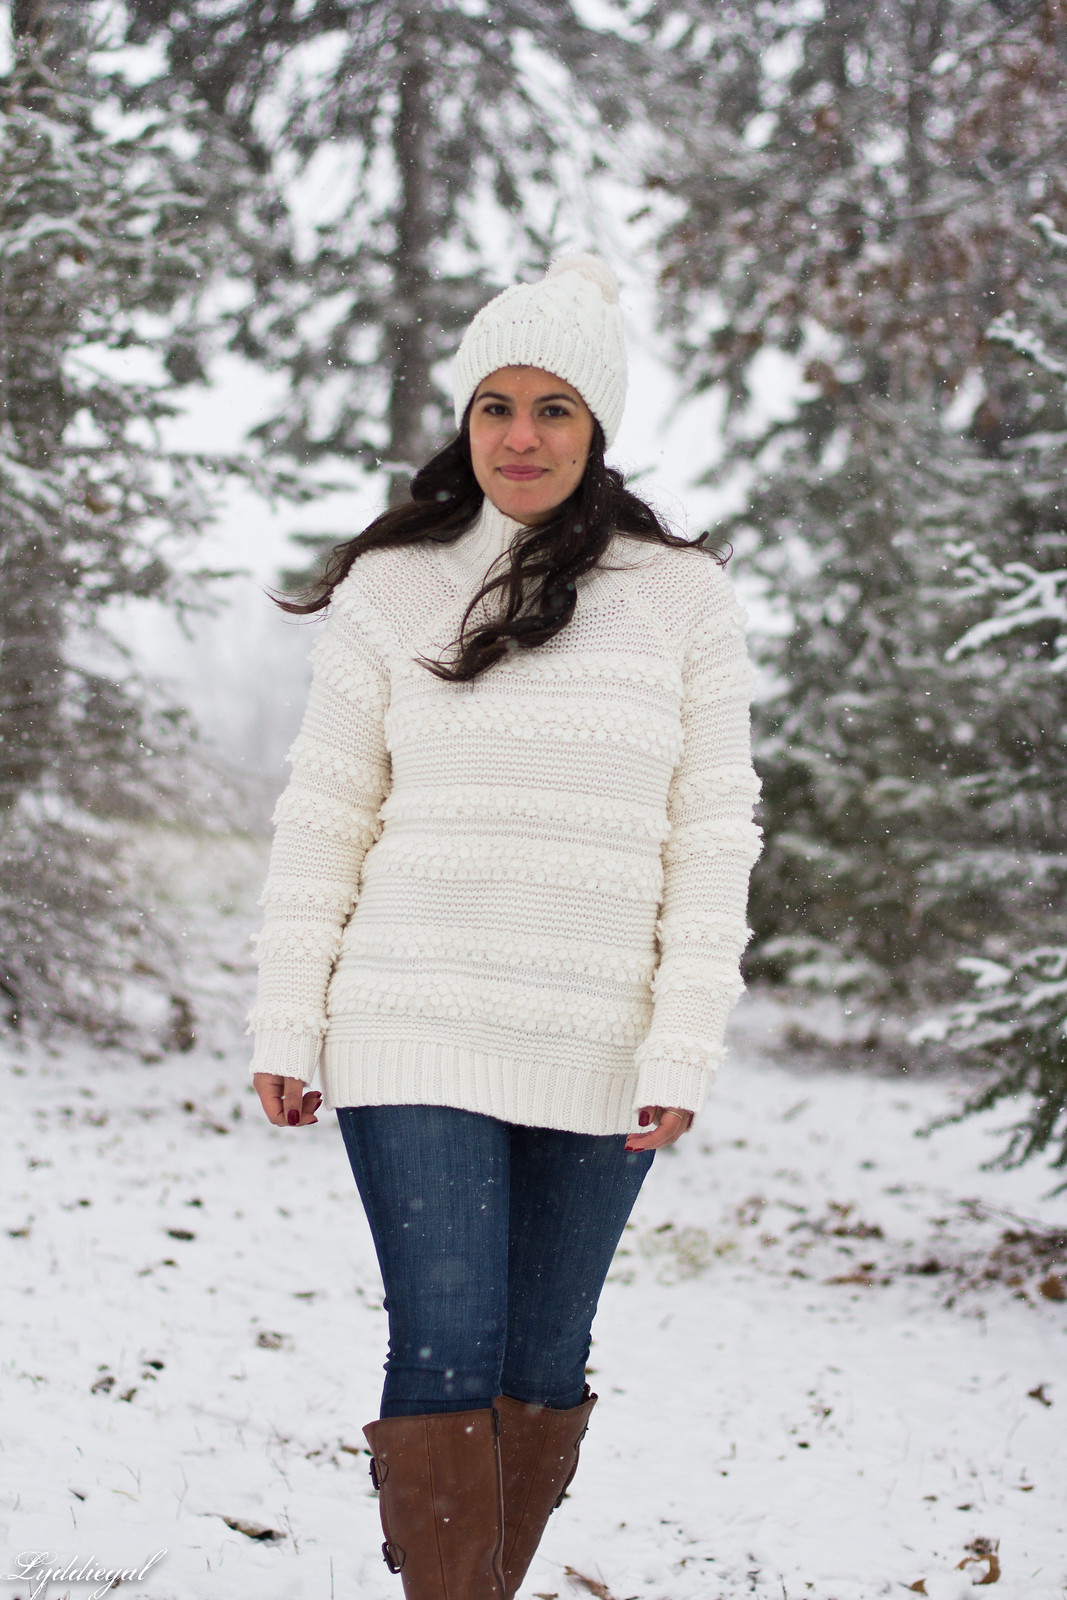 loft white sweater, brown leather boots, pom pom hat, tree hunt outfit-20.jpg